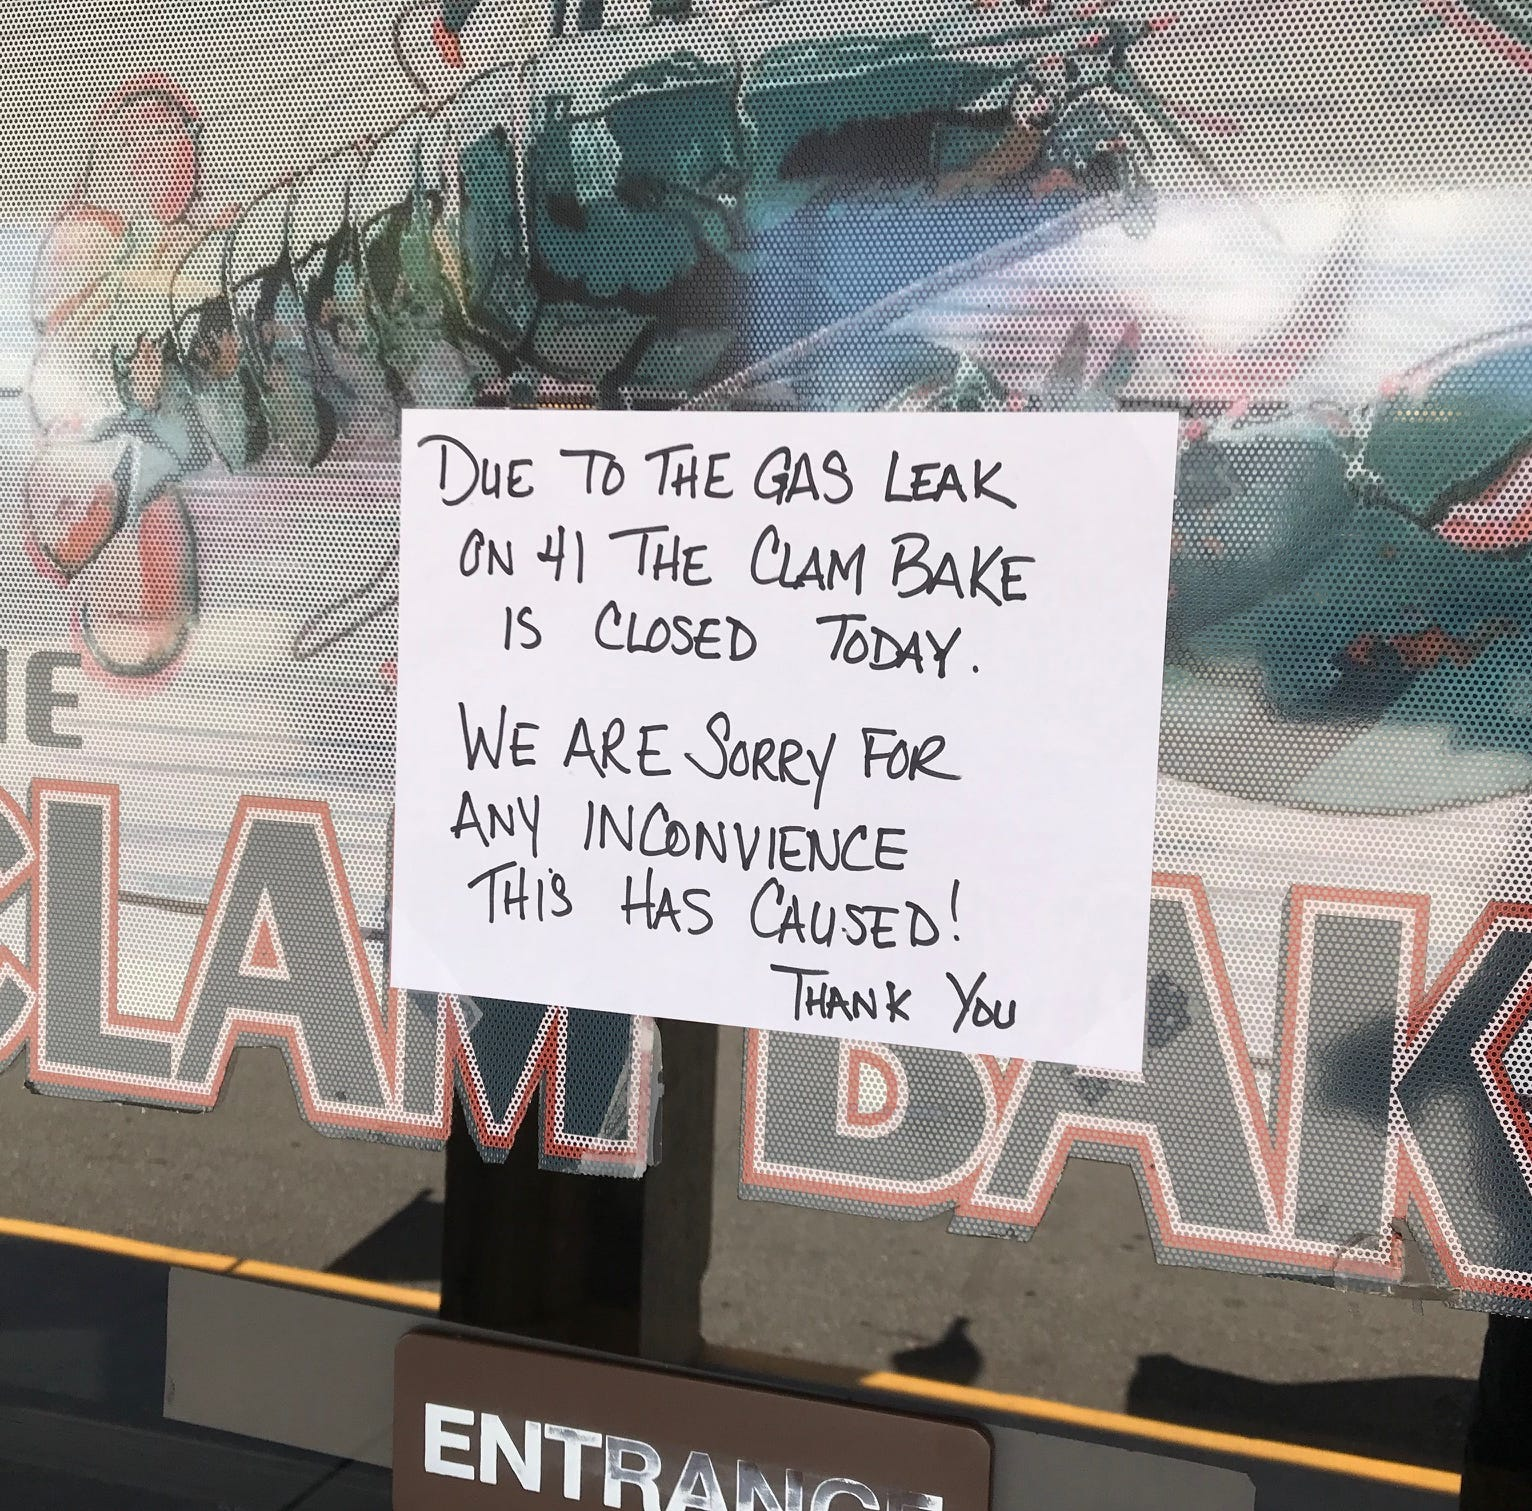 Some effects lingered for south Lee restaurants after gas line breach, most have service